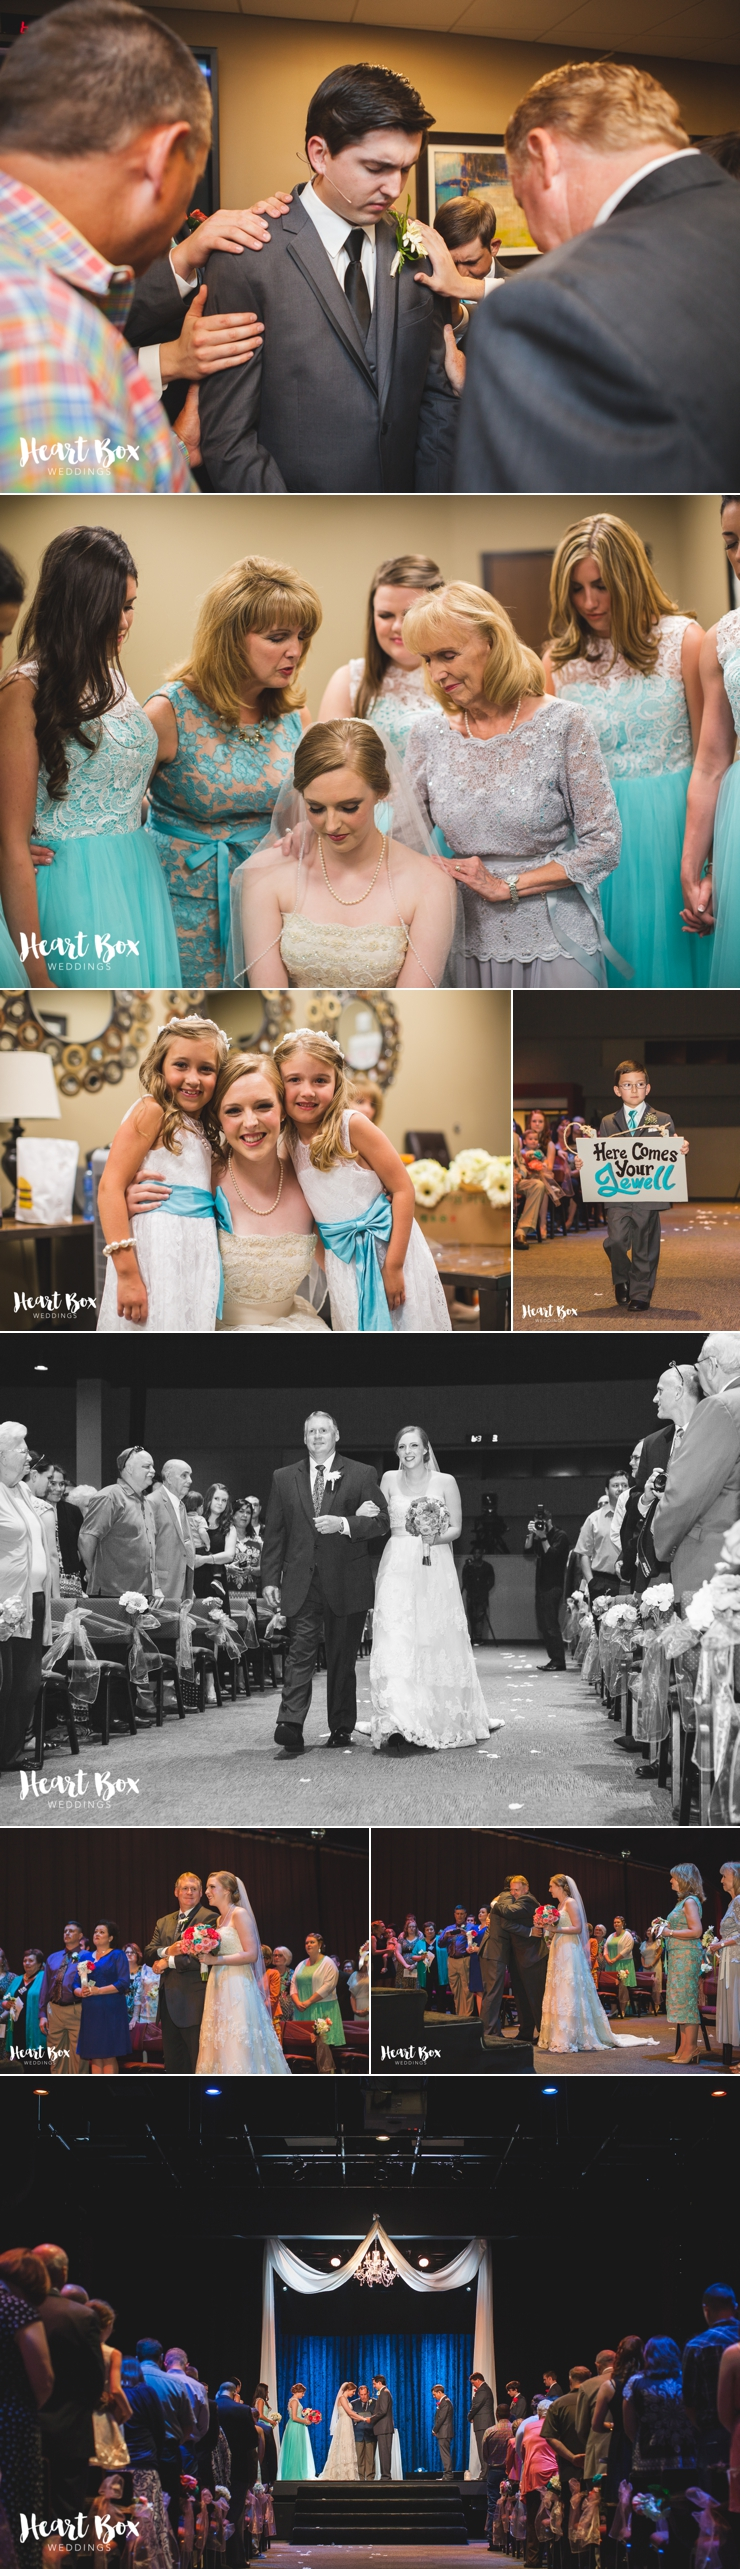 Jewell Wedding Blog Collages 11.jpg